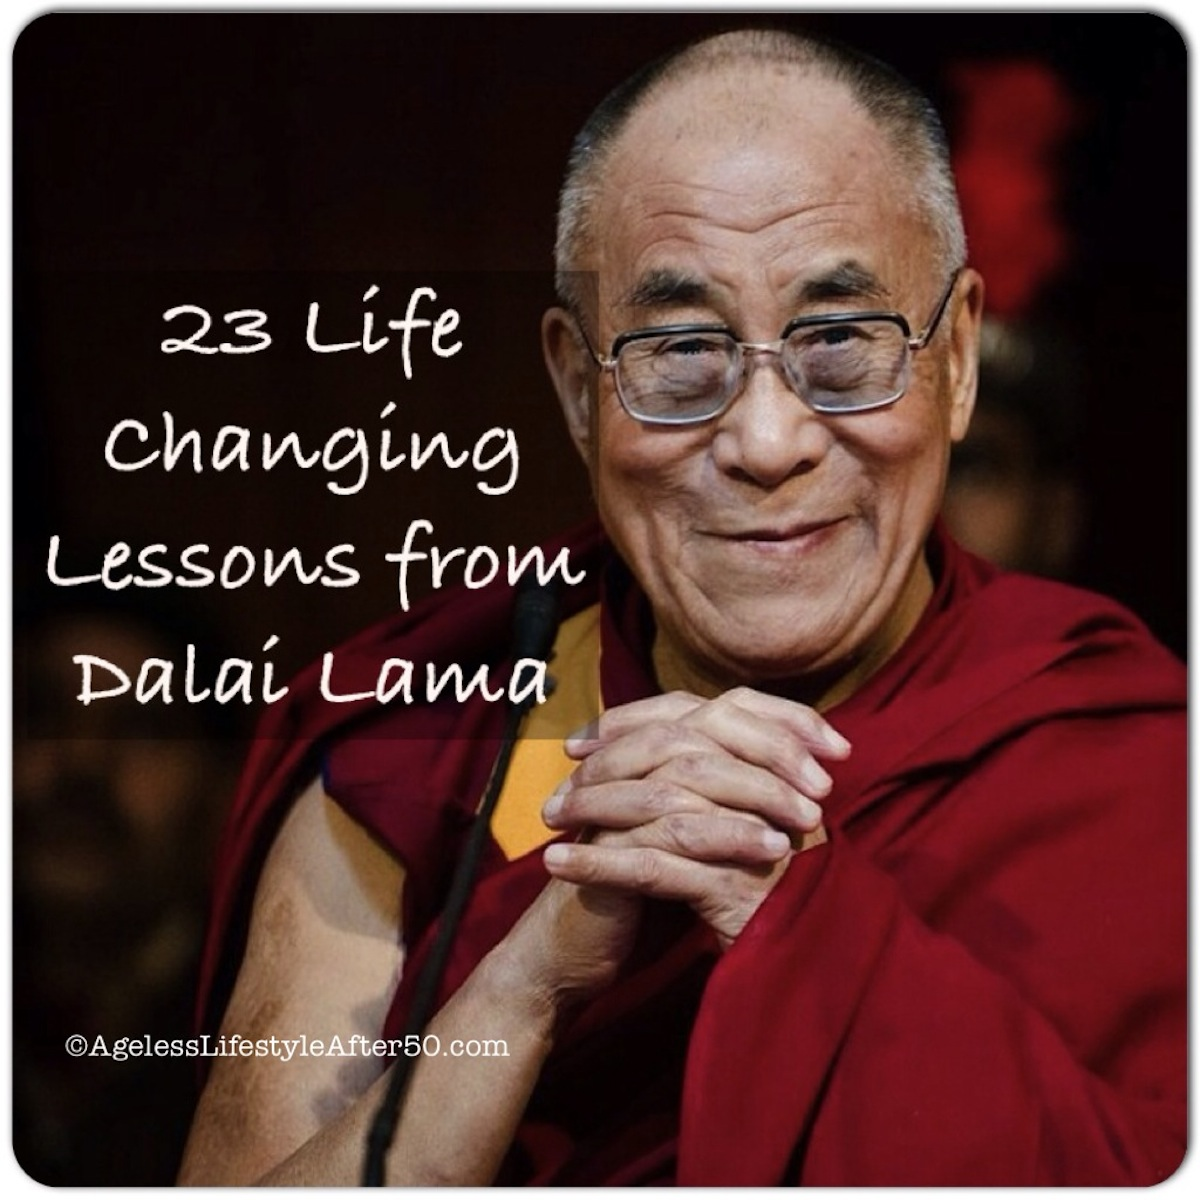 Dalai Lama Quotes On Life 23 Life Changing Lessons From Dalai Lama  Lynn Pierce  Ageless